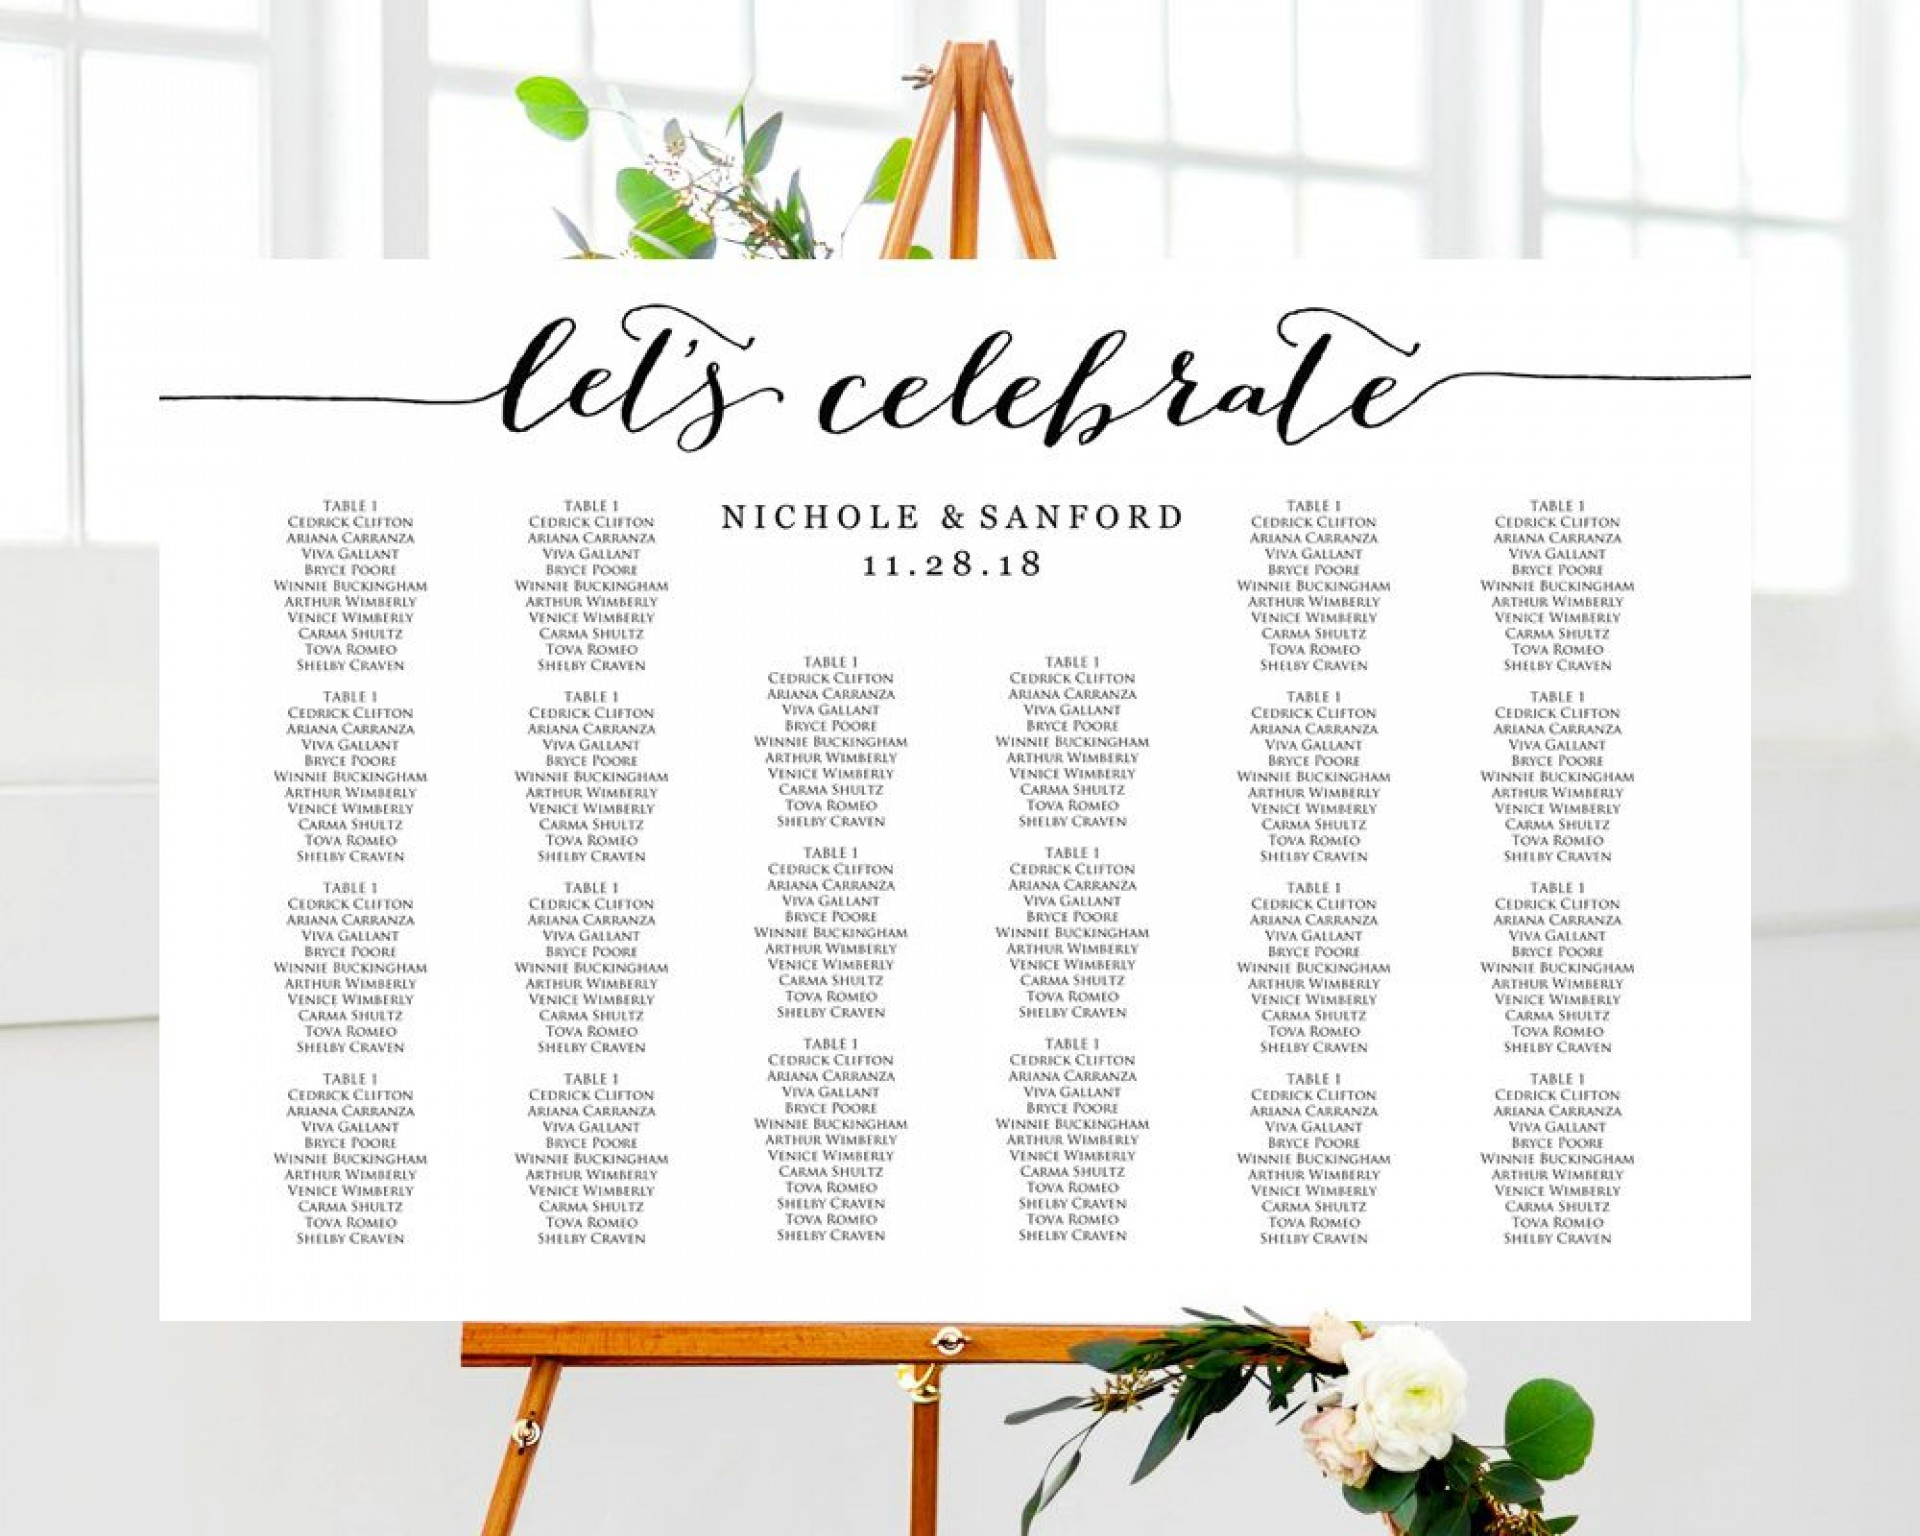 003 Remarkable Seating Chart Wedding Template Highest Clarity  Table Excel Printable Reception Free1920